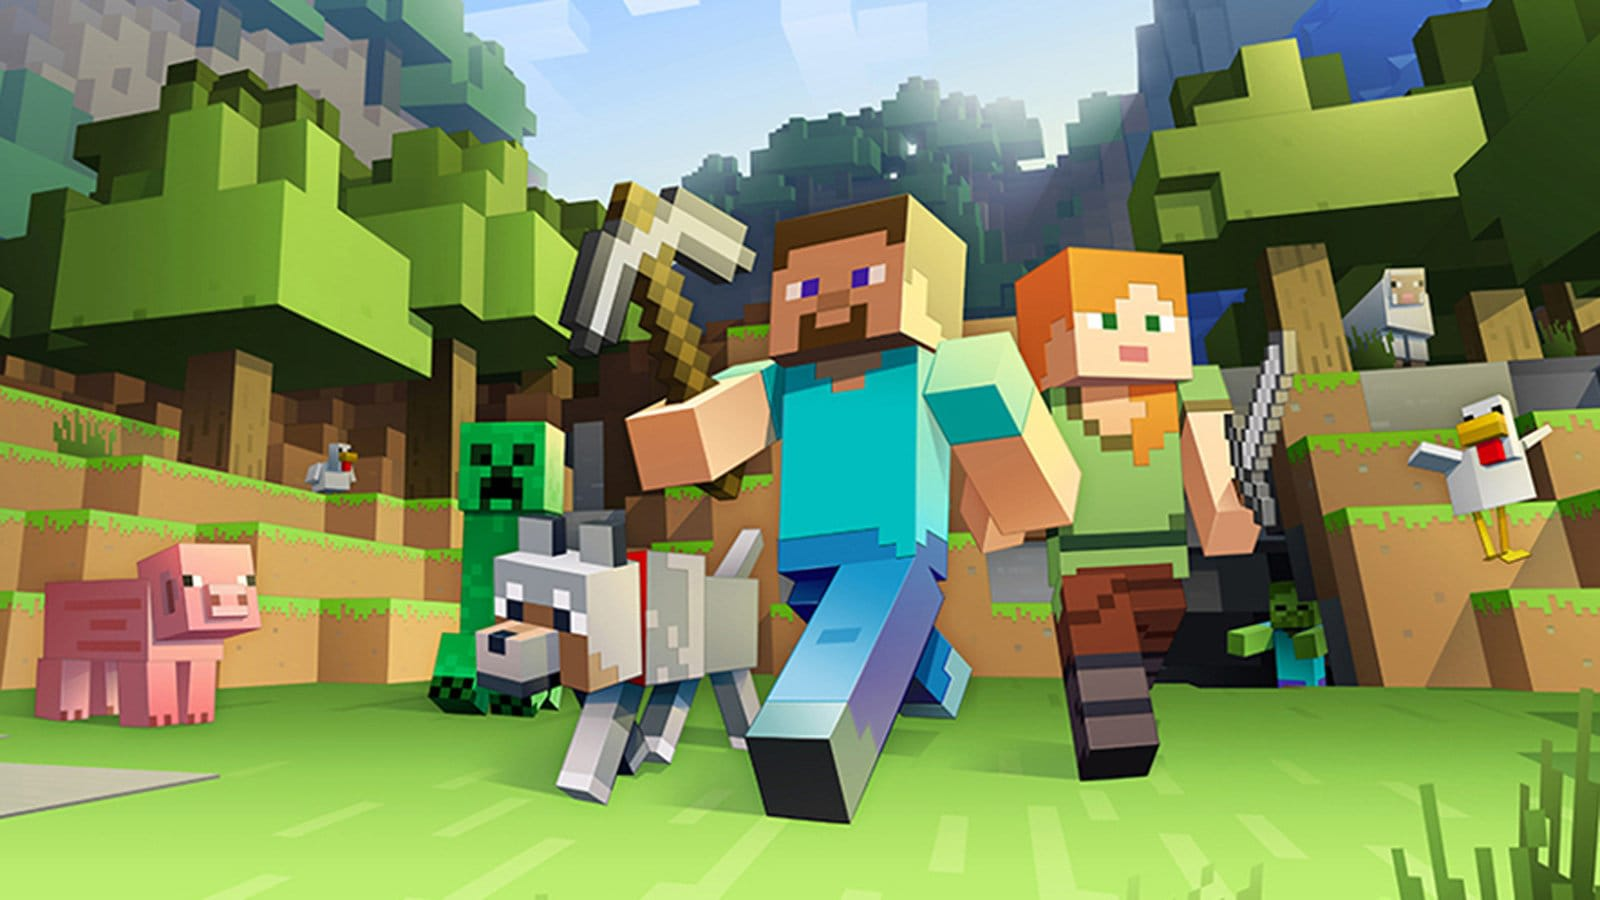 Minecraft hack cheat with unlimited resources